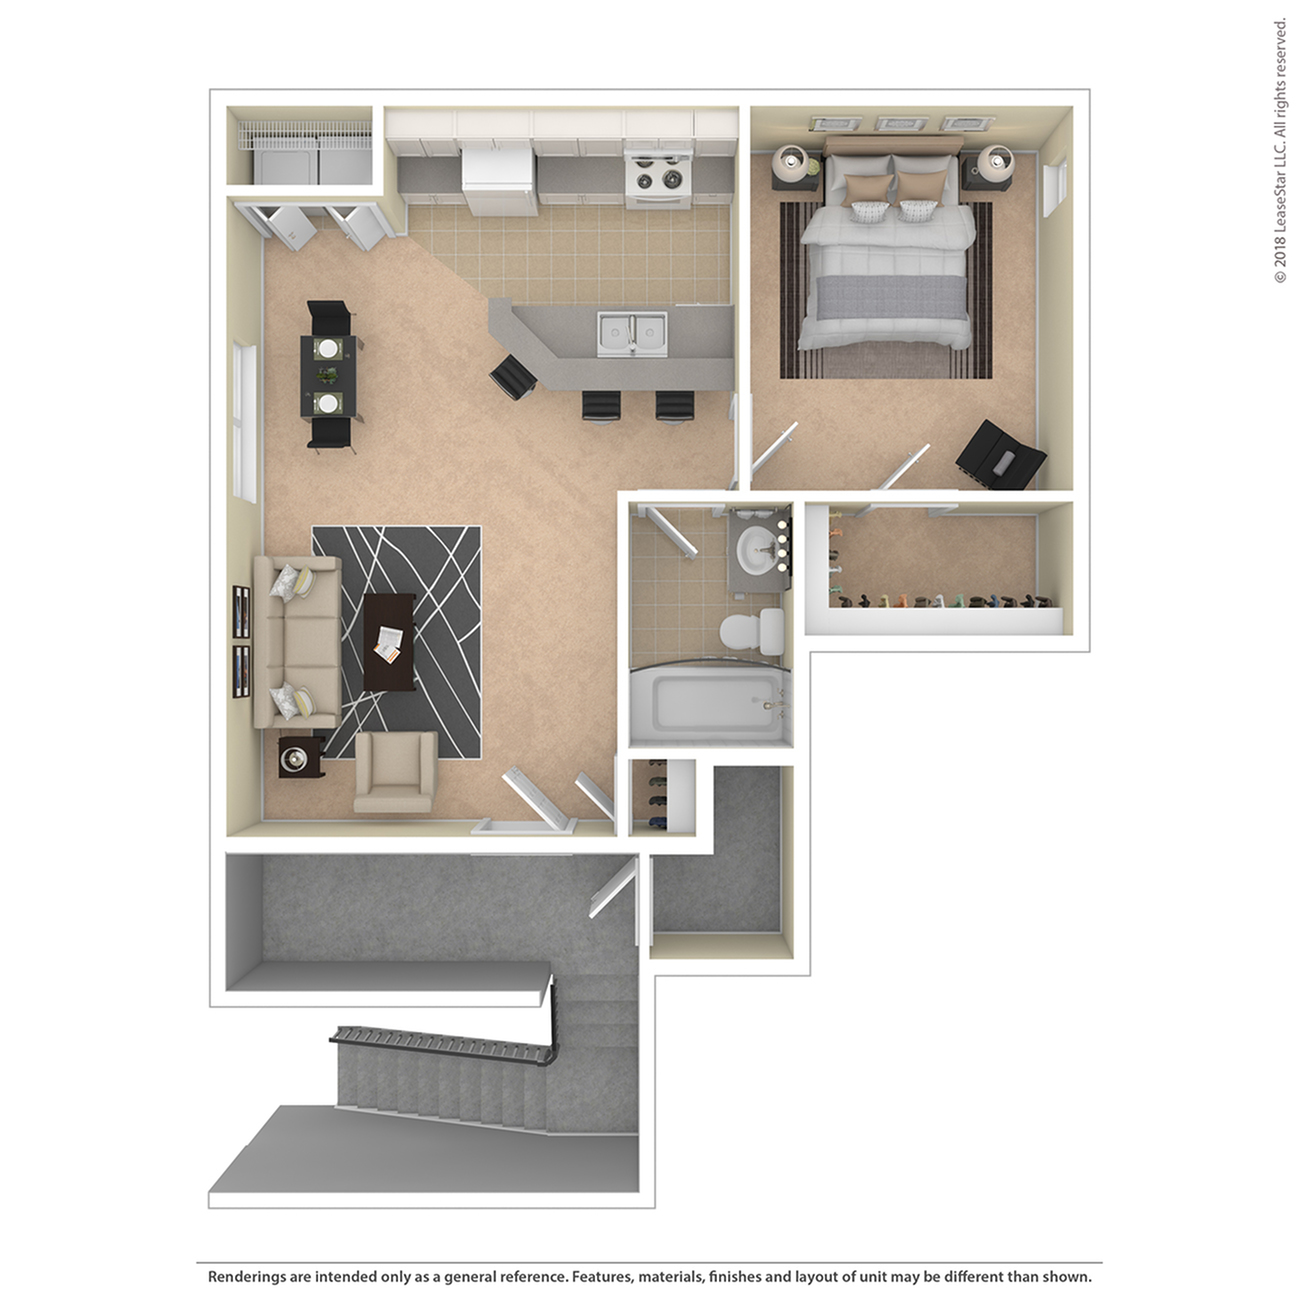 1 Bedroom Floor Plan | Apartments For Rent Colorado Springs | Willows at Printers Park